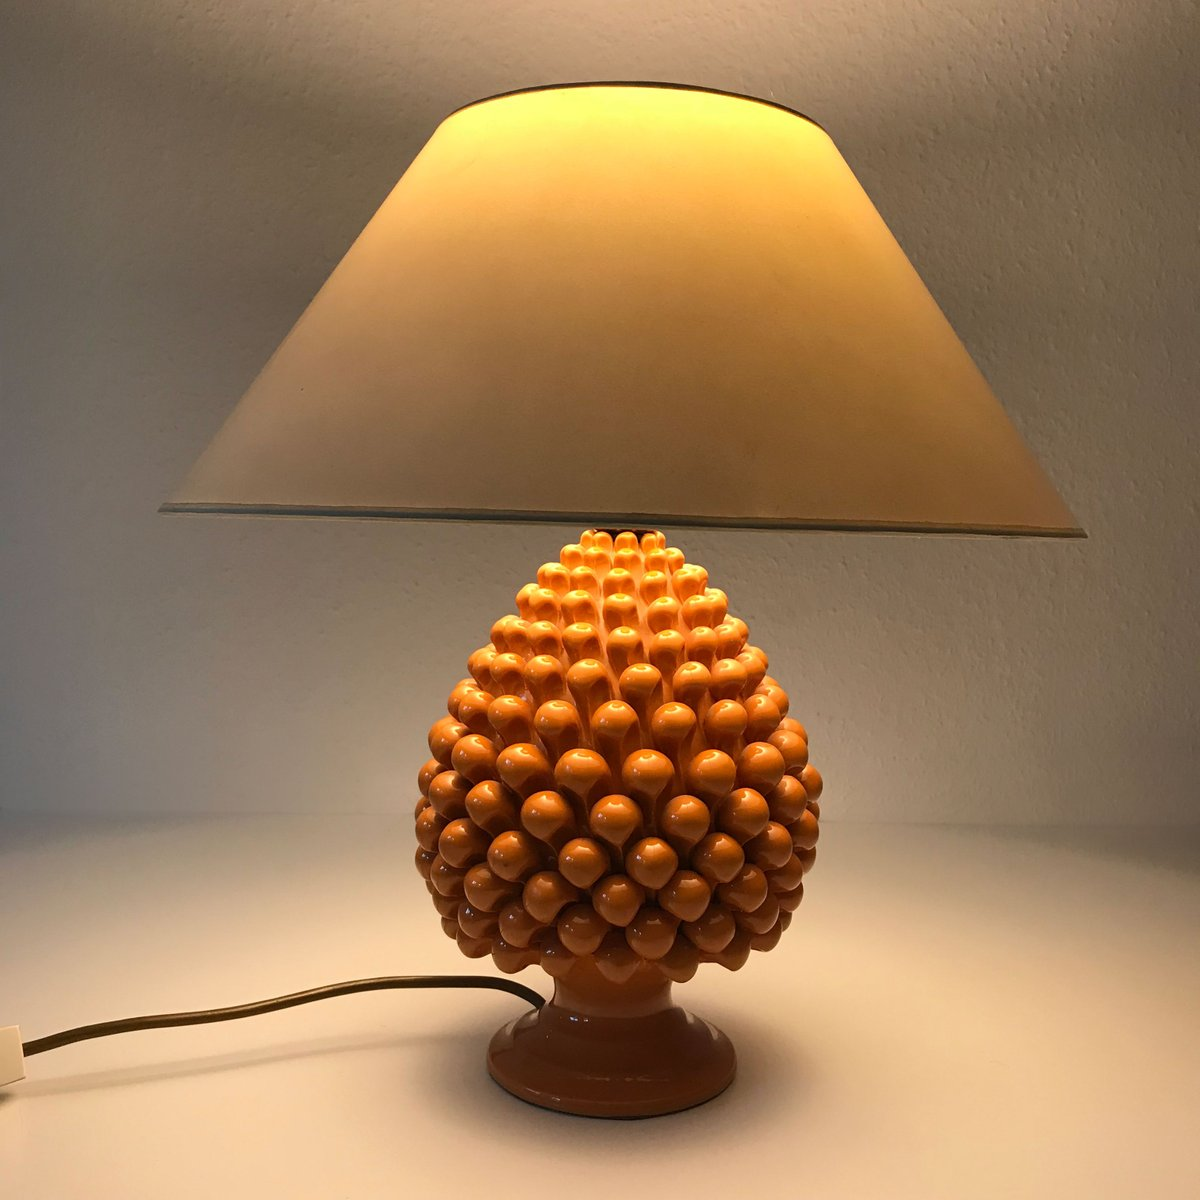 Vintage Pineapple Ceramic Table Lamp, 1970s for sale at Pamono